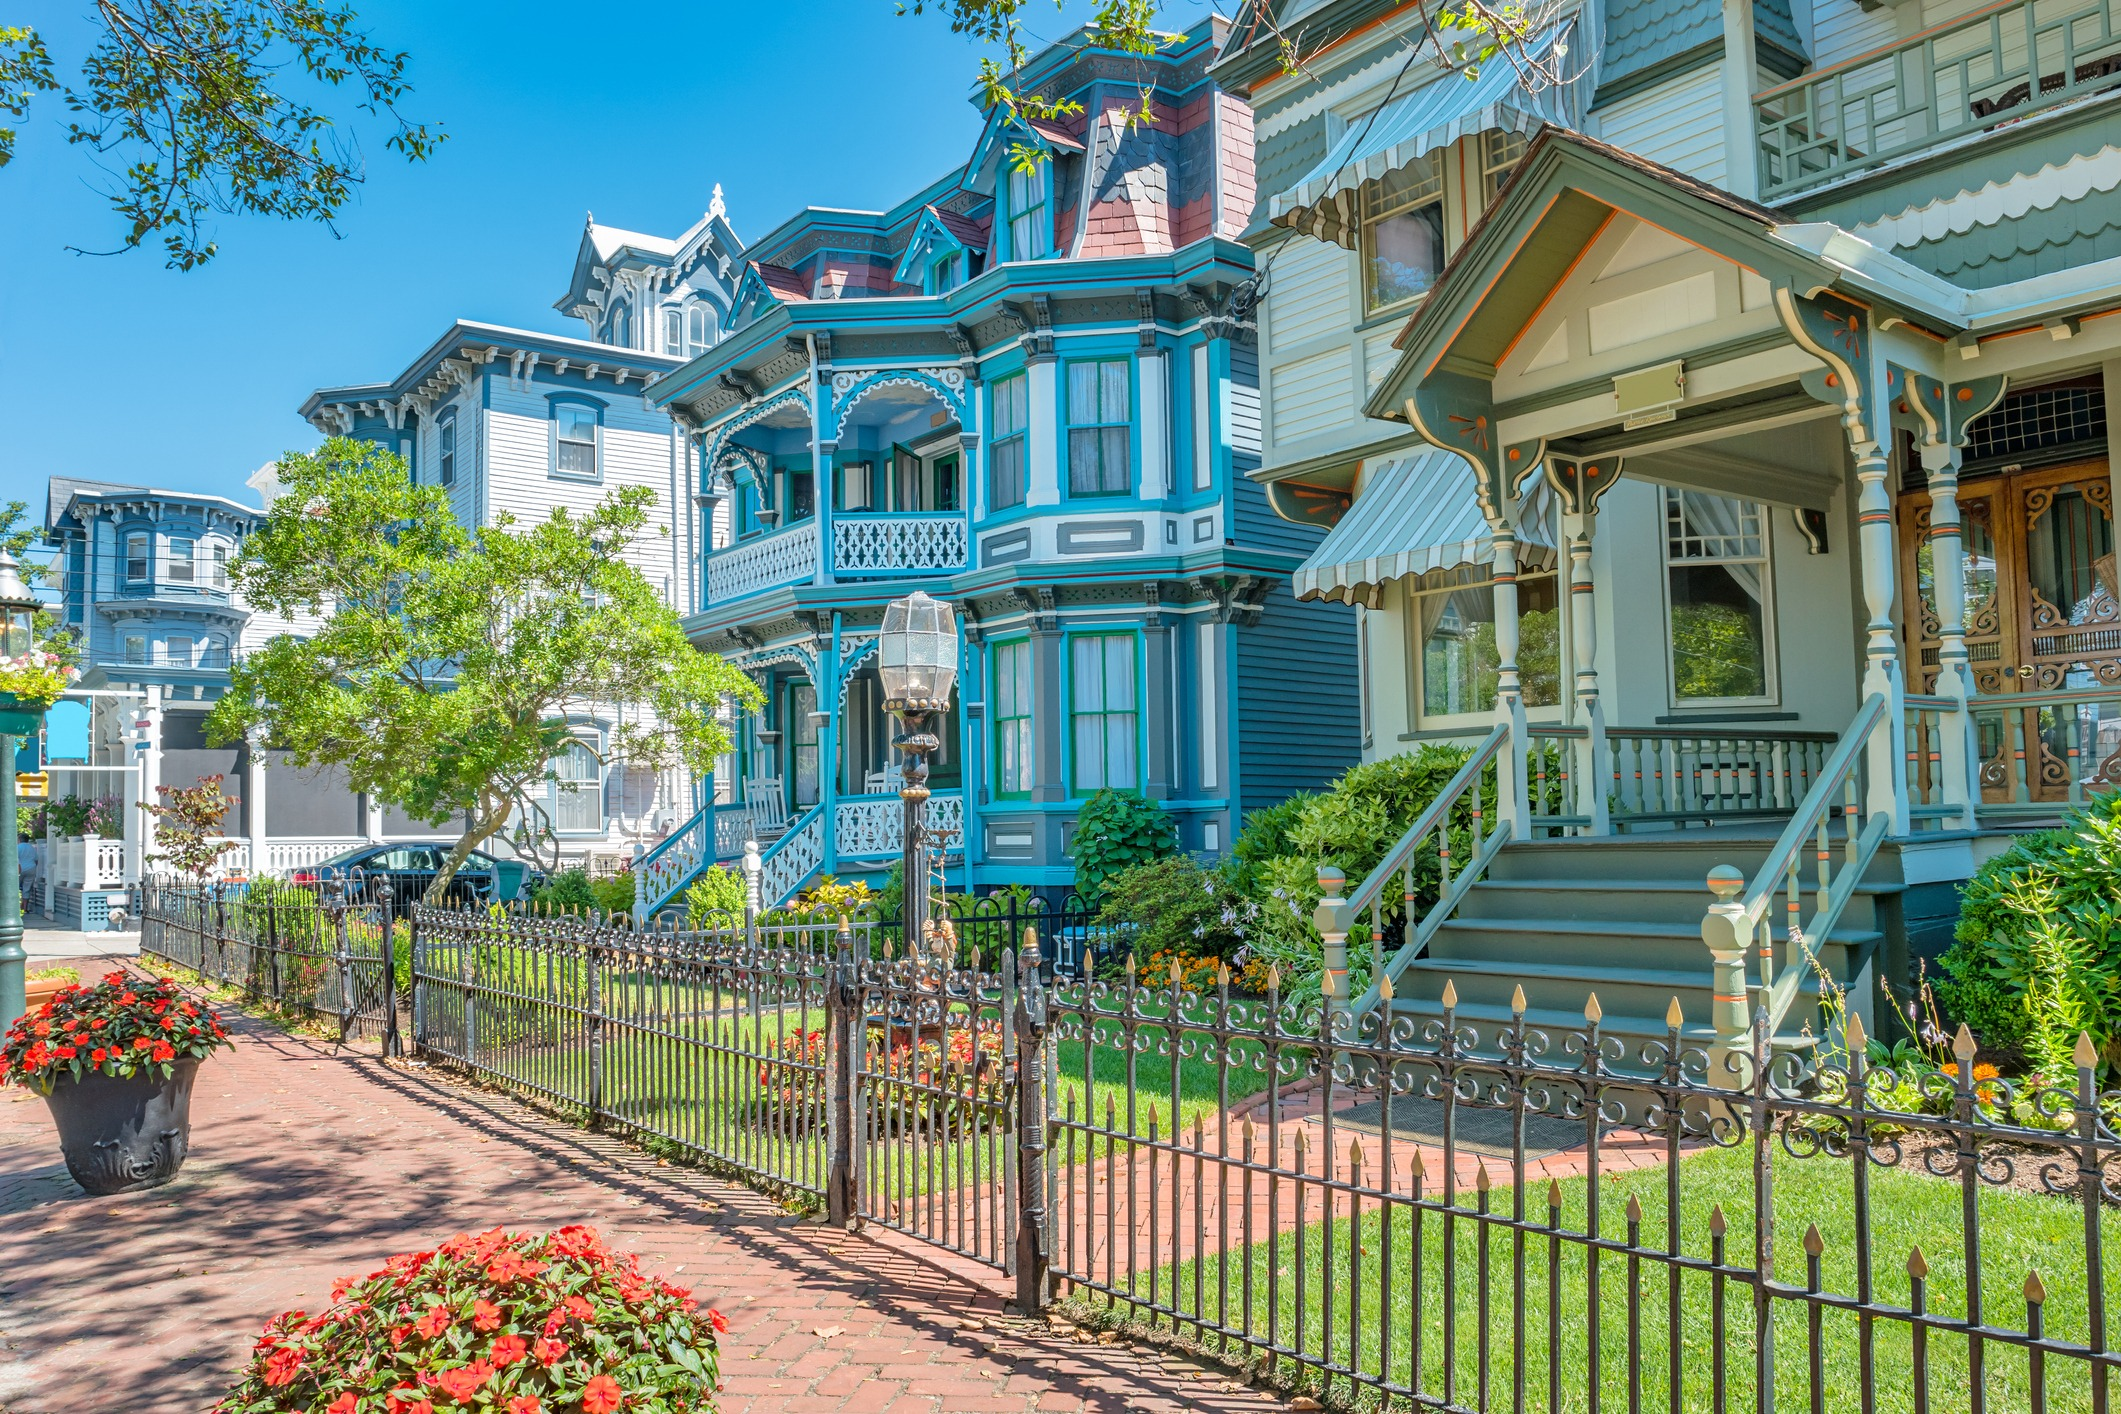 image of Victorian houses in Cape May